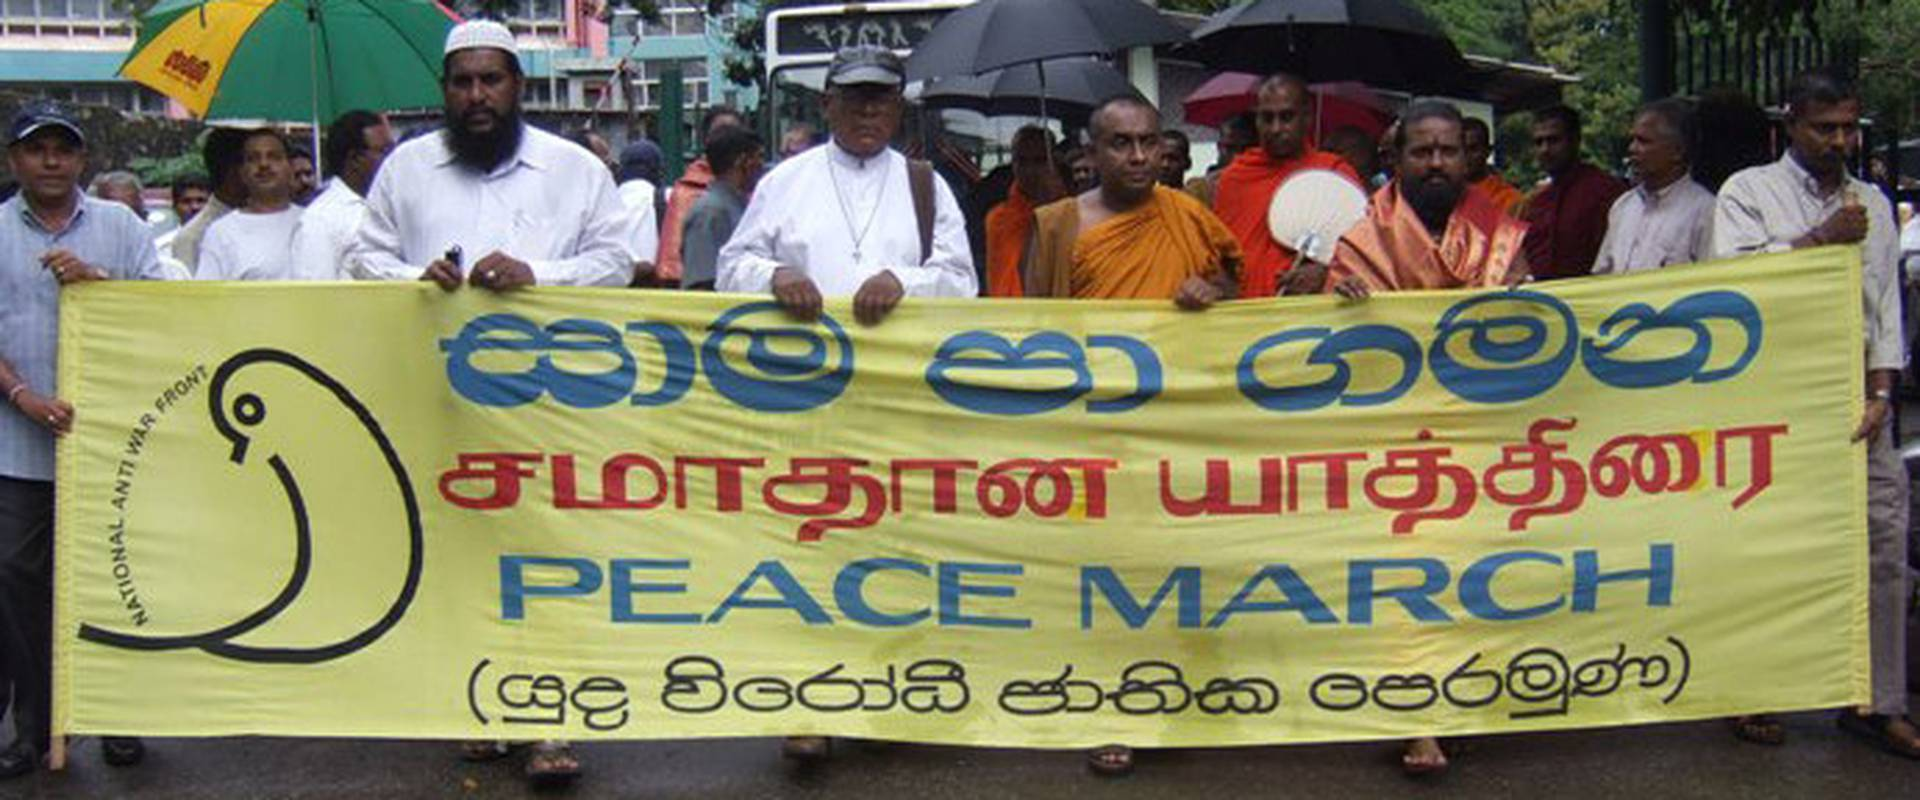 Image result for muslim community assisting against terrorism in sri lanka